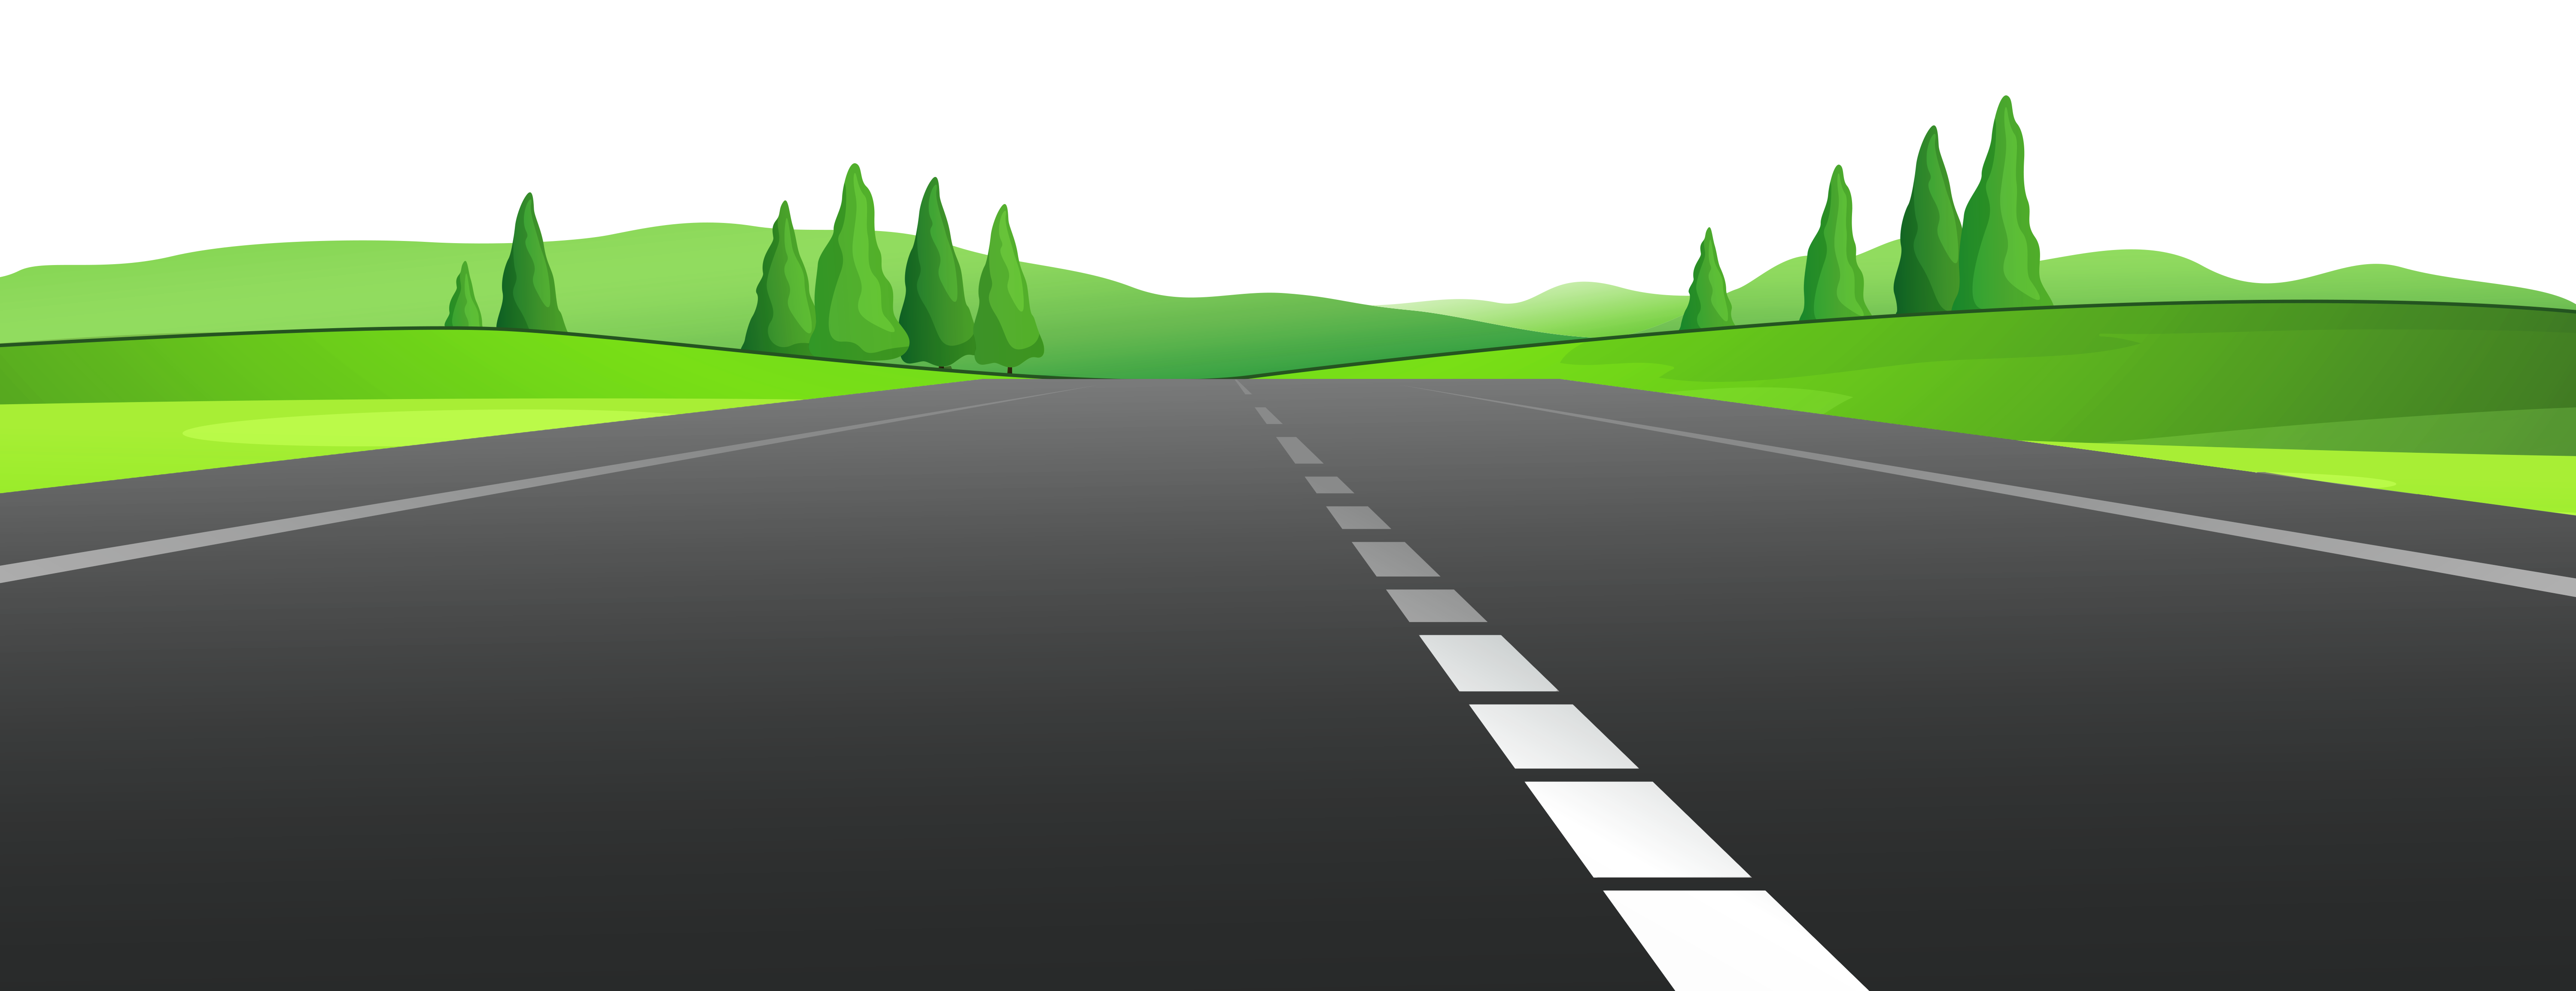 Road images clipart banner freeuse Road with Grass PNG Clipart | Gallery Yopriceville - High ... banner freeuse